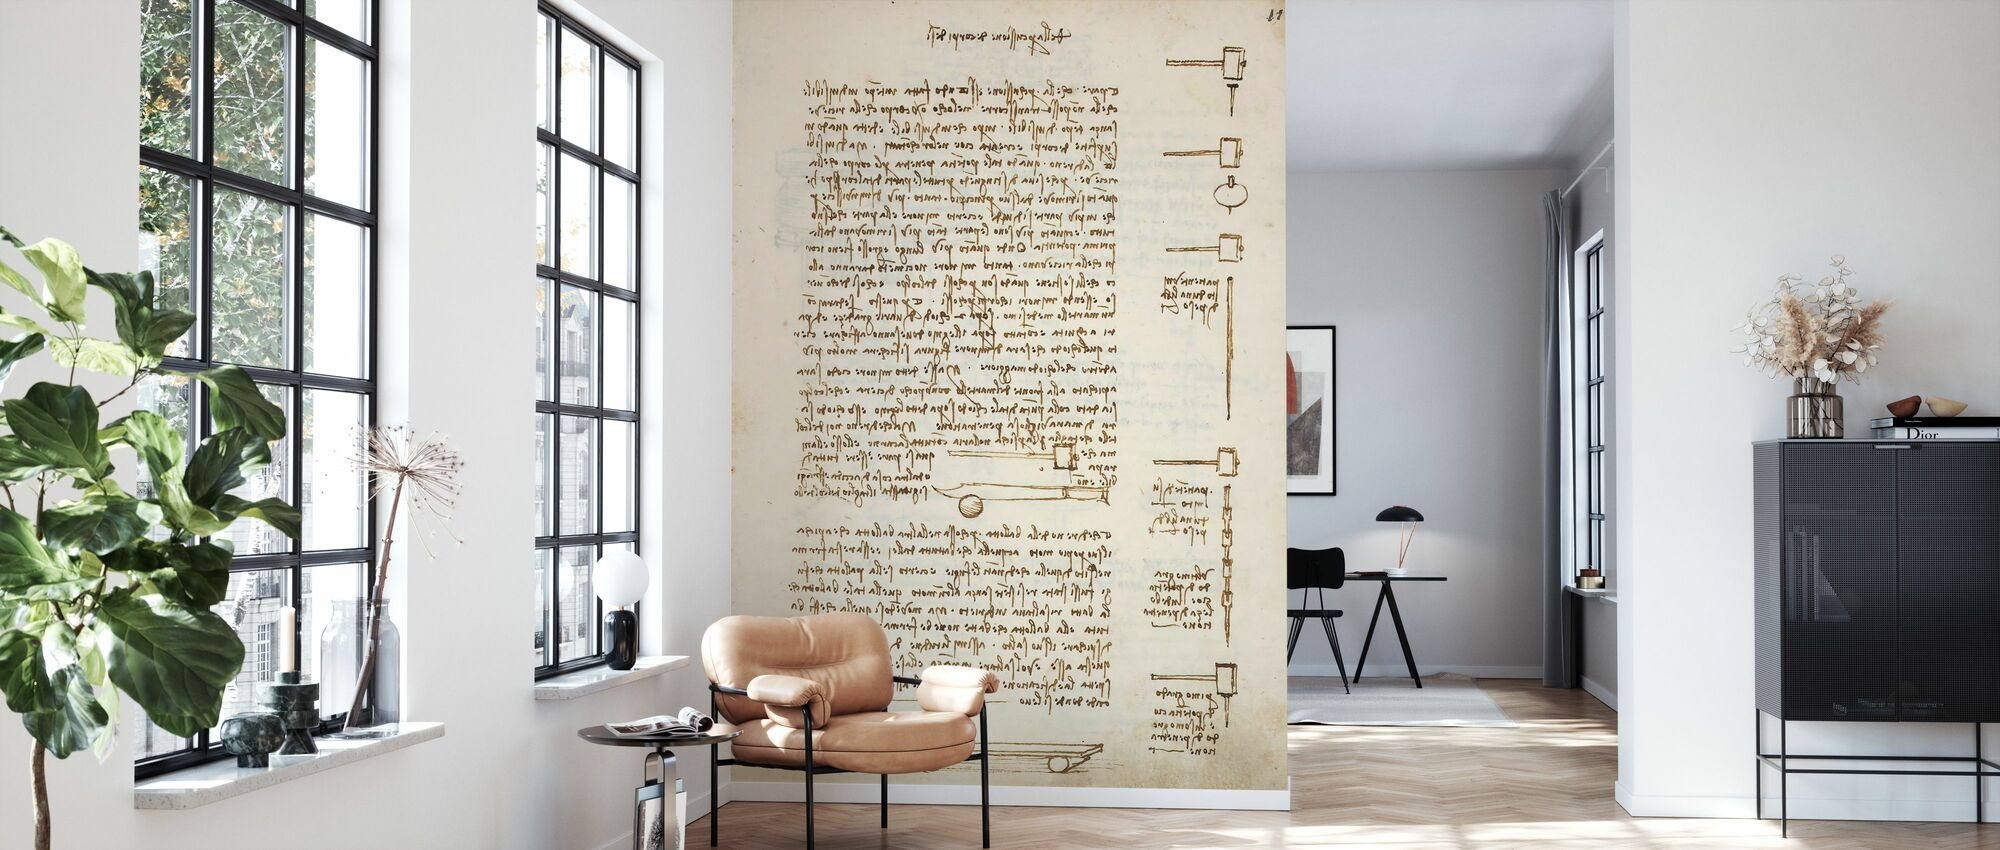 Statics and Mechanics - Leonardo Da Vinci - Wallpaper - Living Room